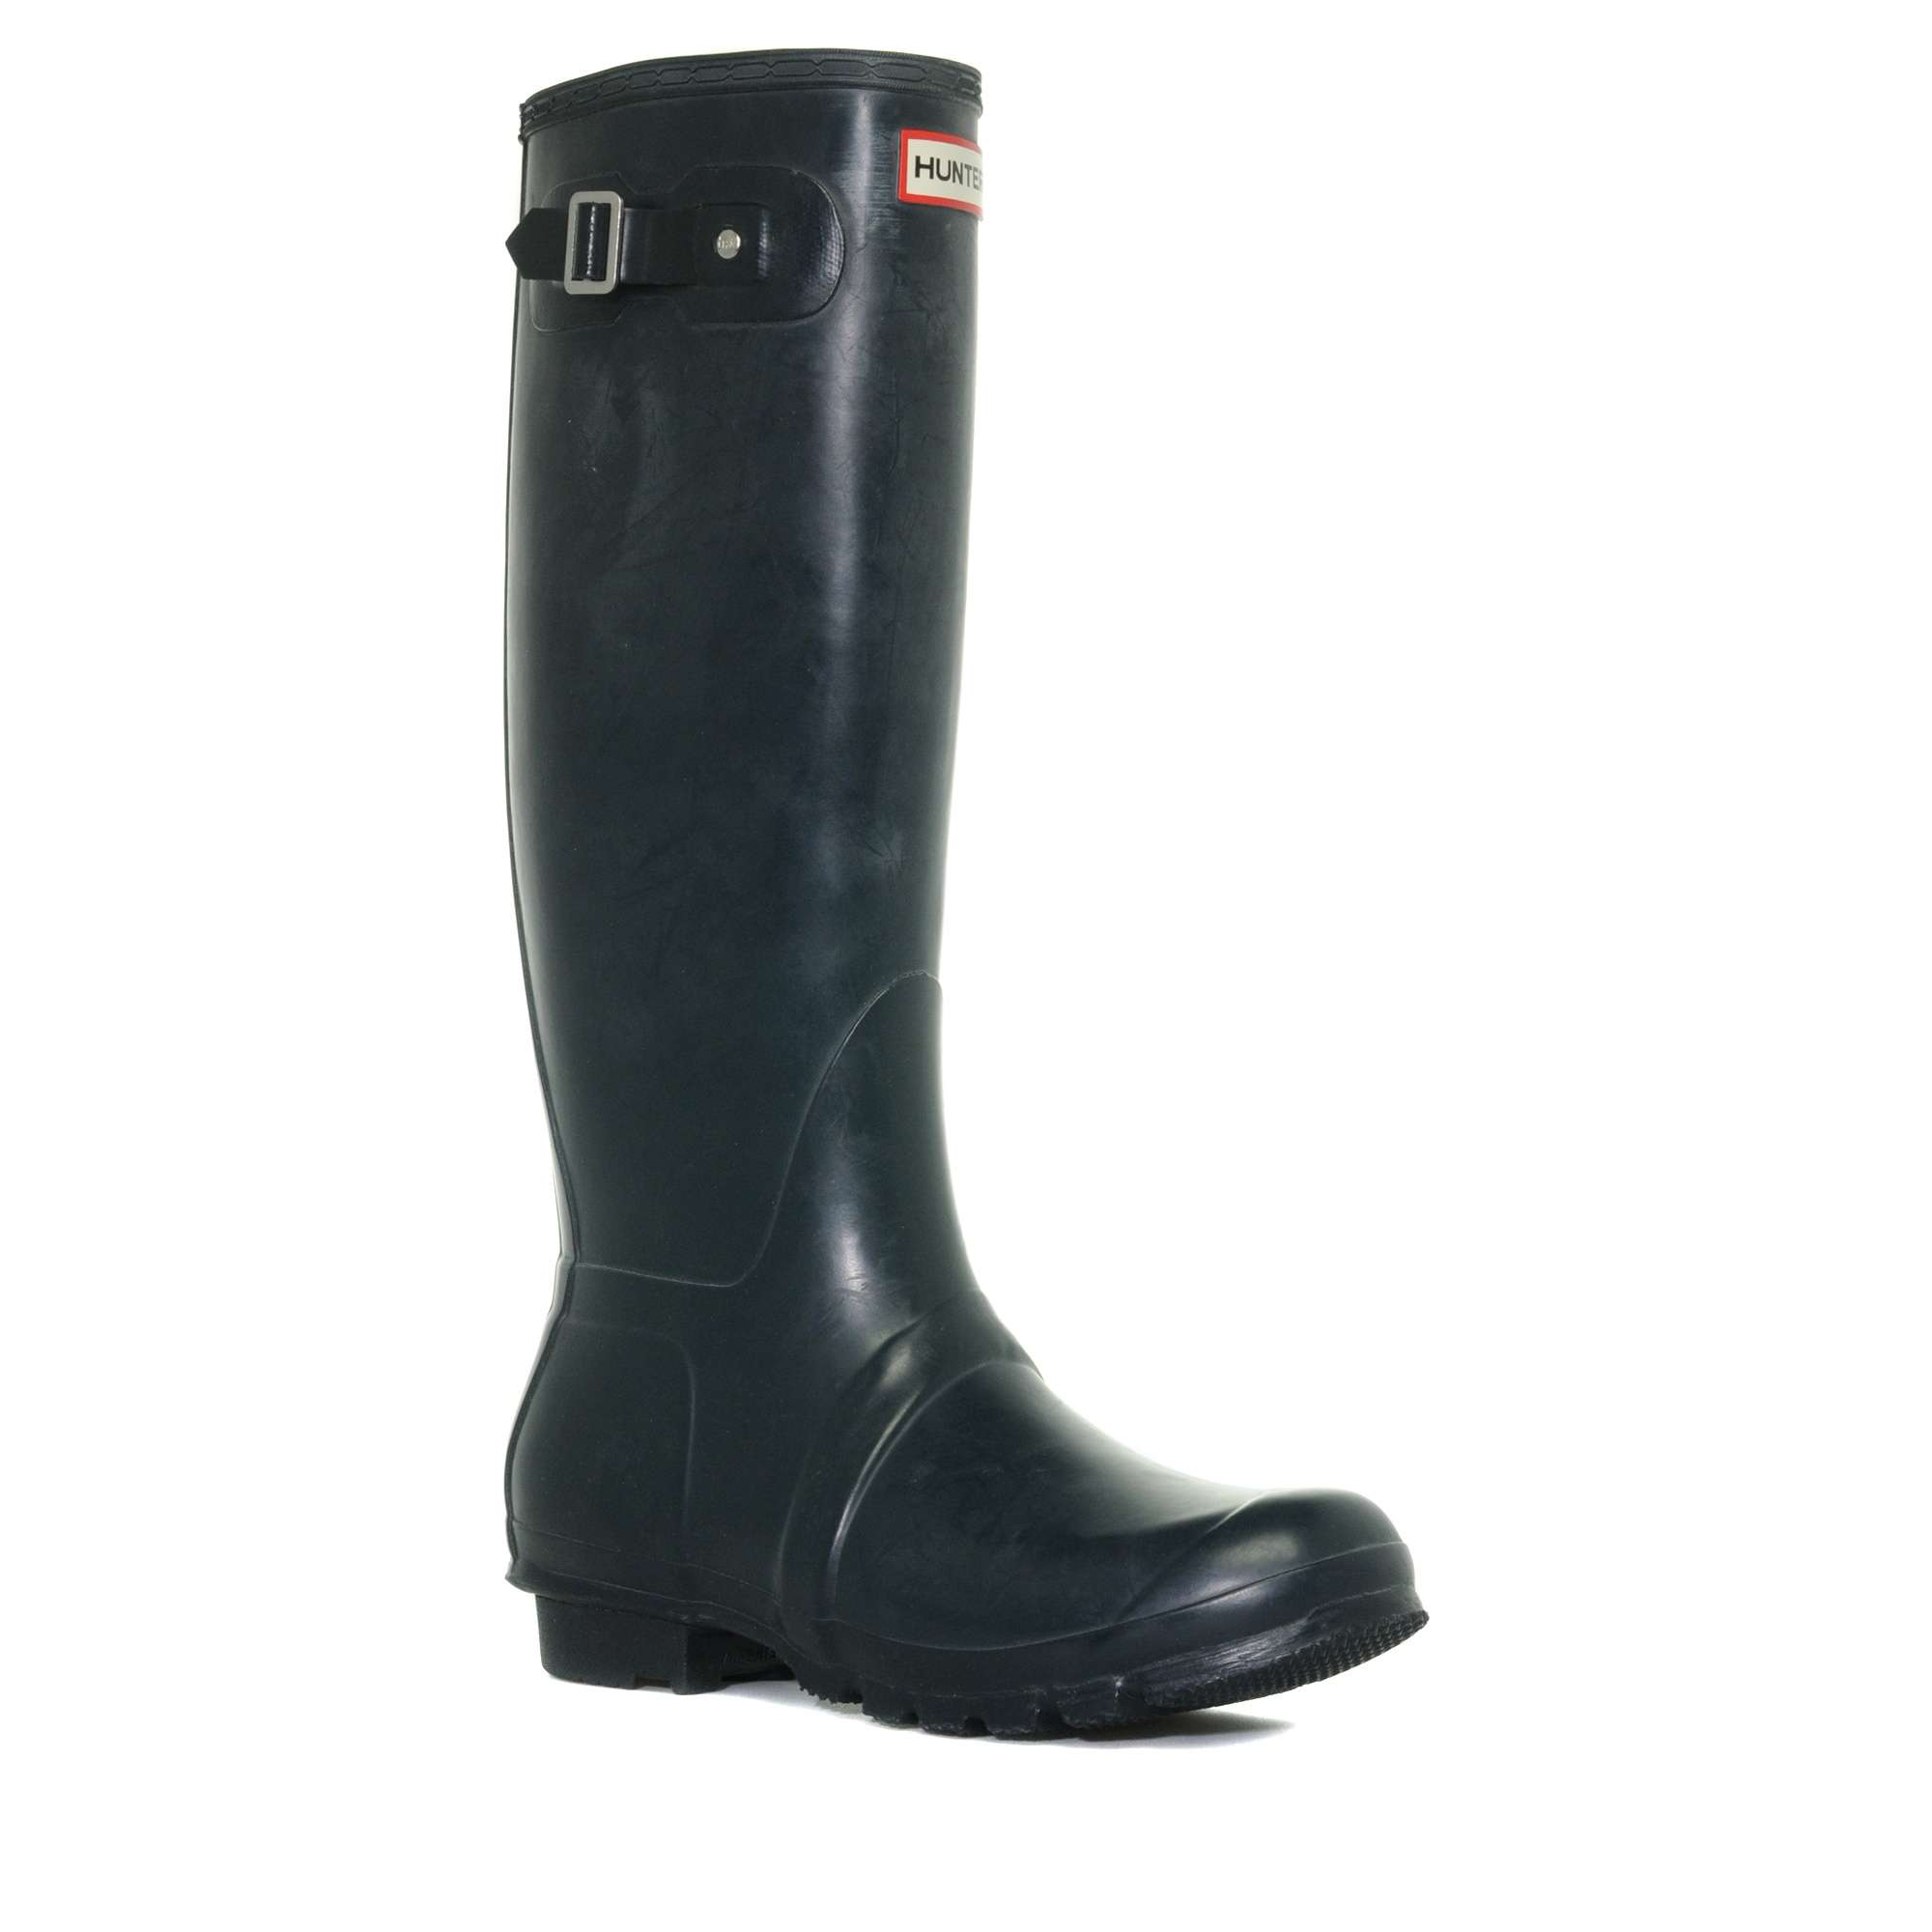 HUNTER Unisex Original Wellies